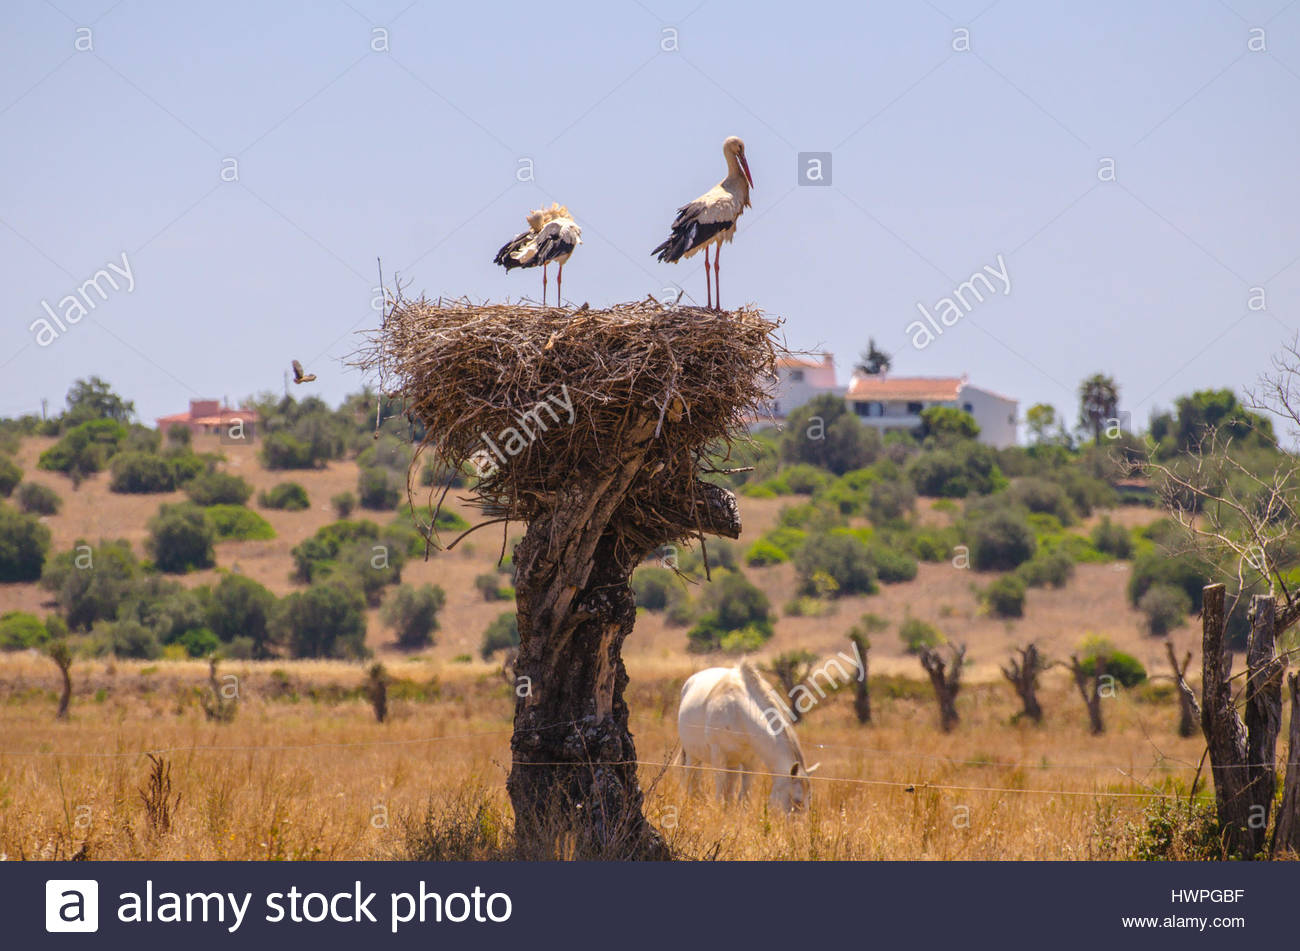 Sorks in their nest and a horse. - Stock Image